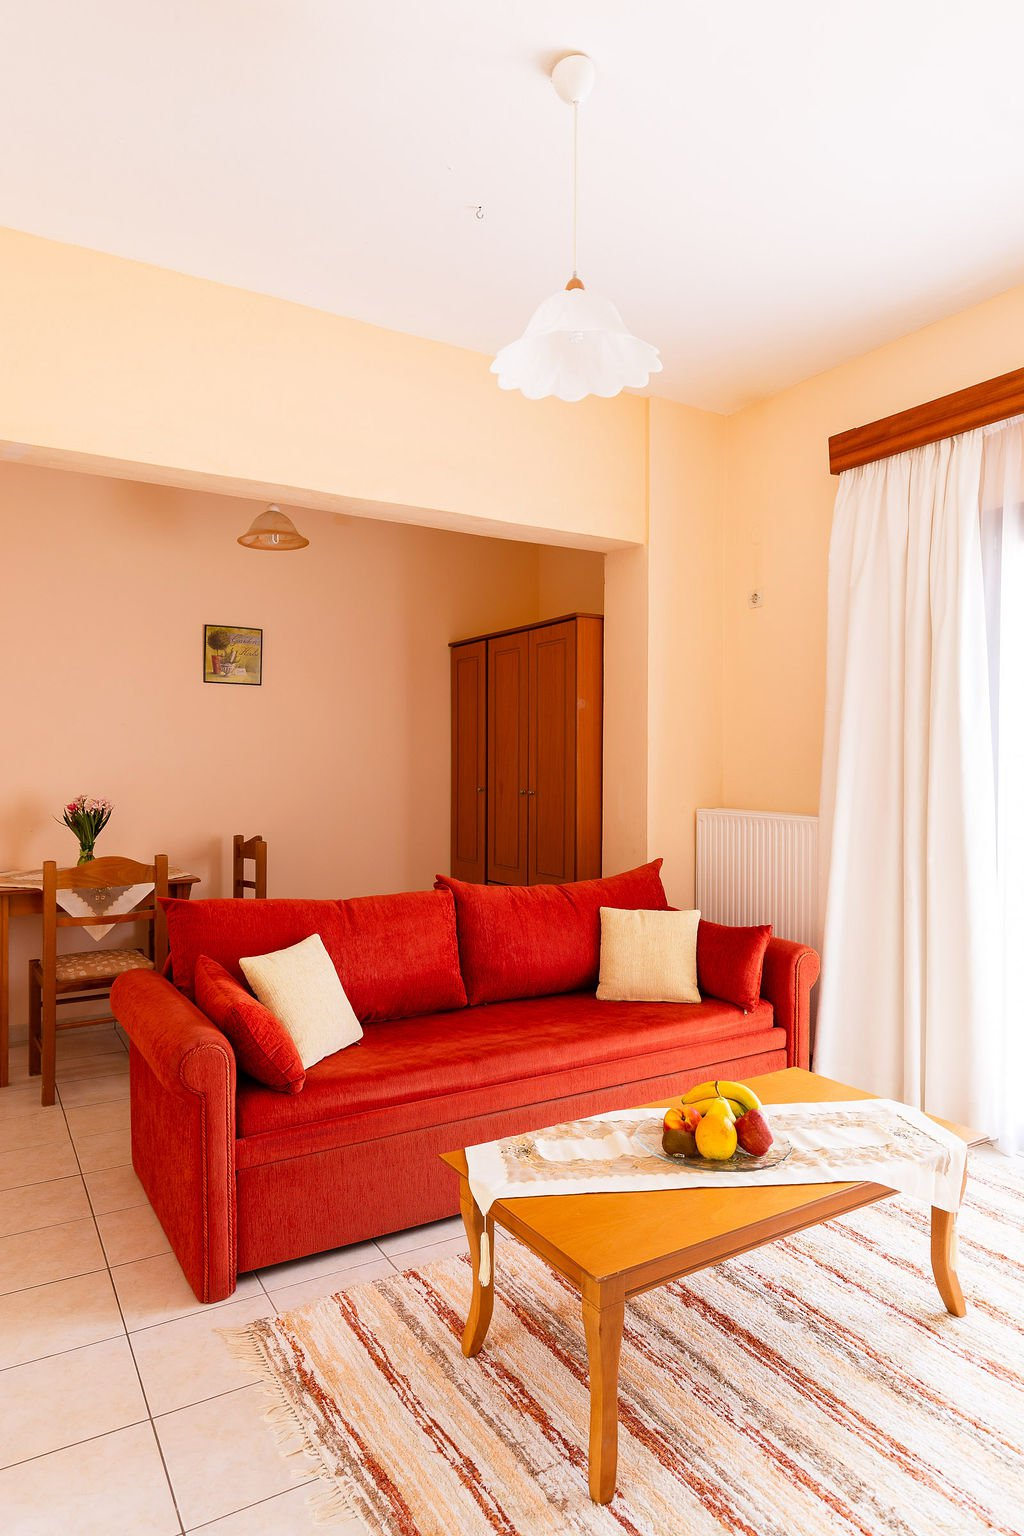 Accommodation in Corfu, Houmis Apartment and Studios - Apatrment No.  17